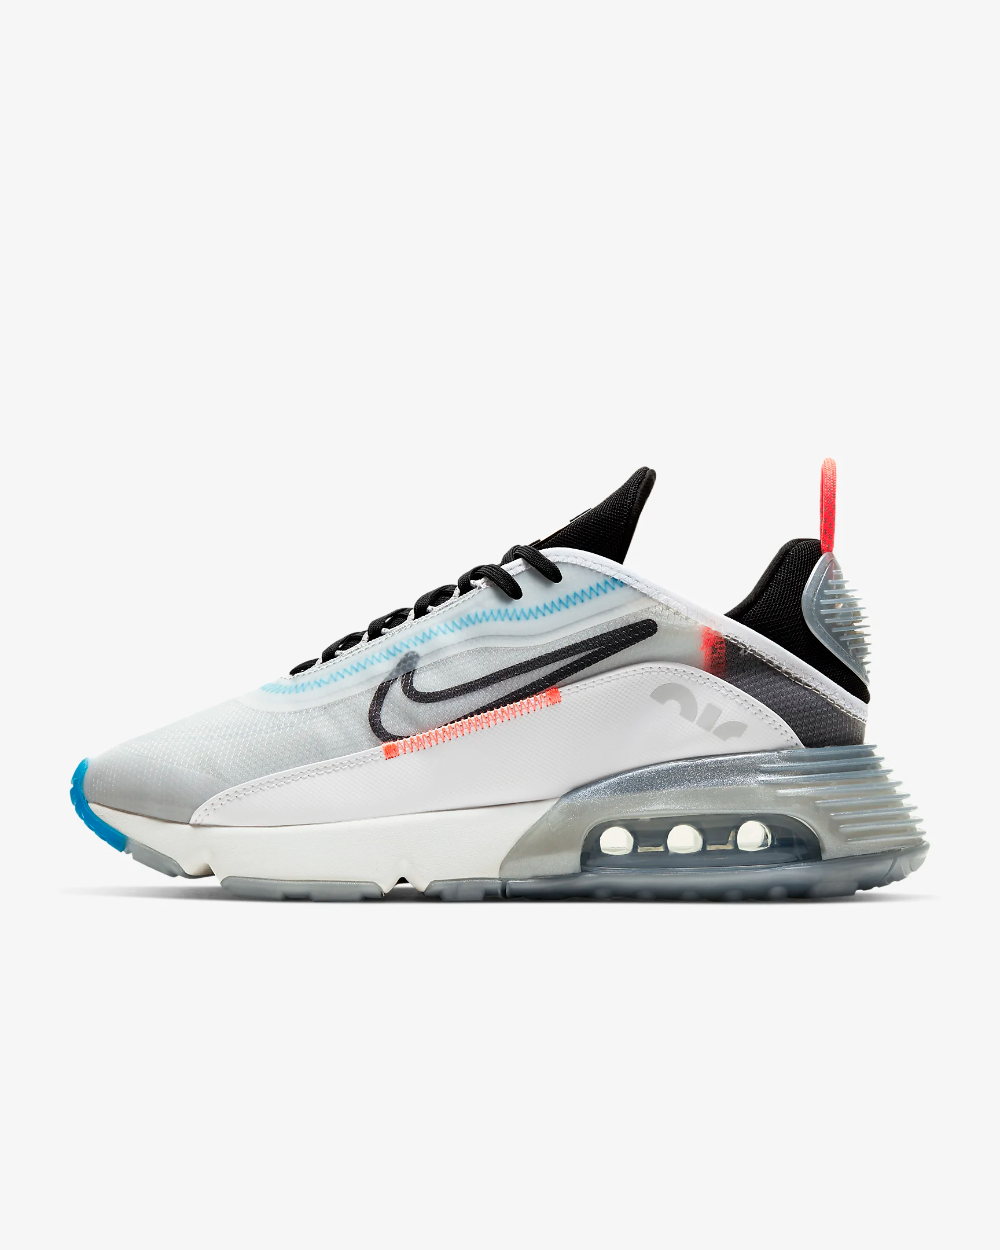 Air Max 2090 Men's Shoe in 2020 | Shoes mens, Nike air max